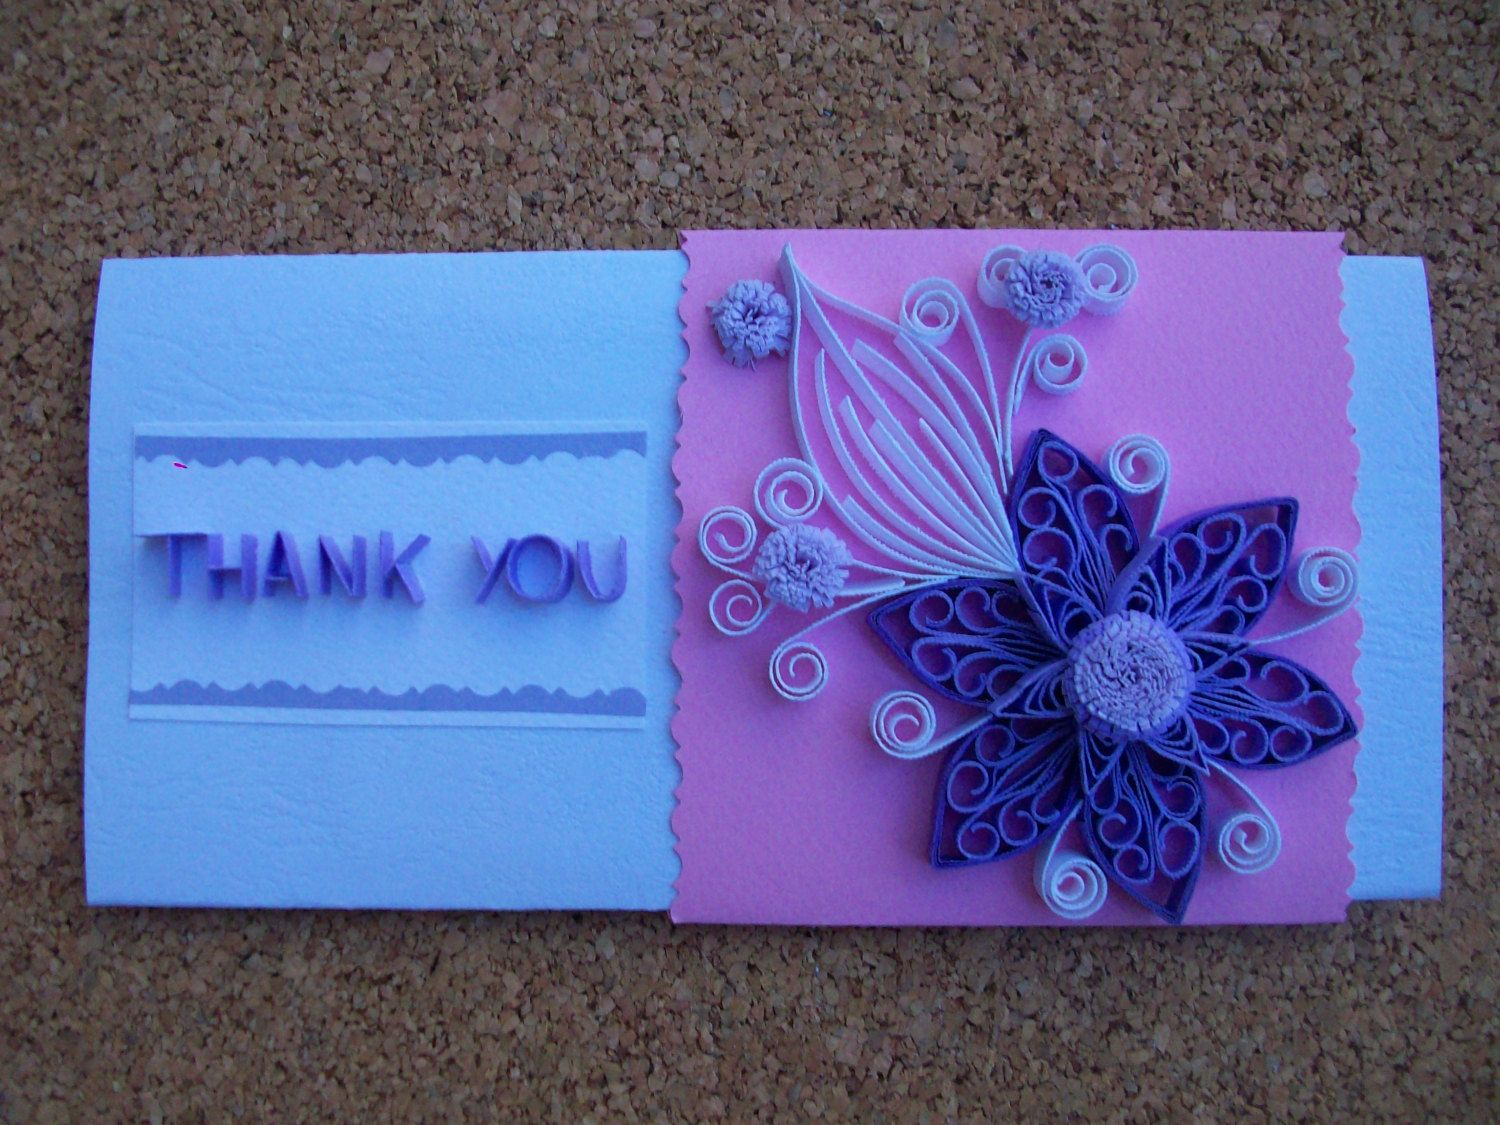 Thank you card paper quilling card handmade quilled card thank thank you card paper quilling card handmade quilled card thank you greeting card paper quilling quilling art greeting card kristyandbryce Images